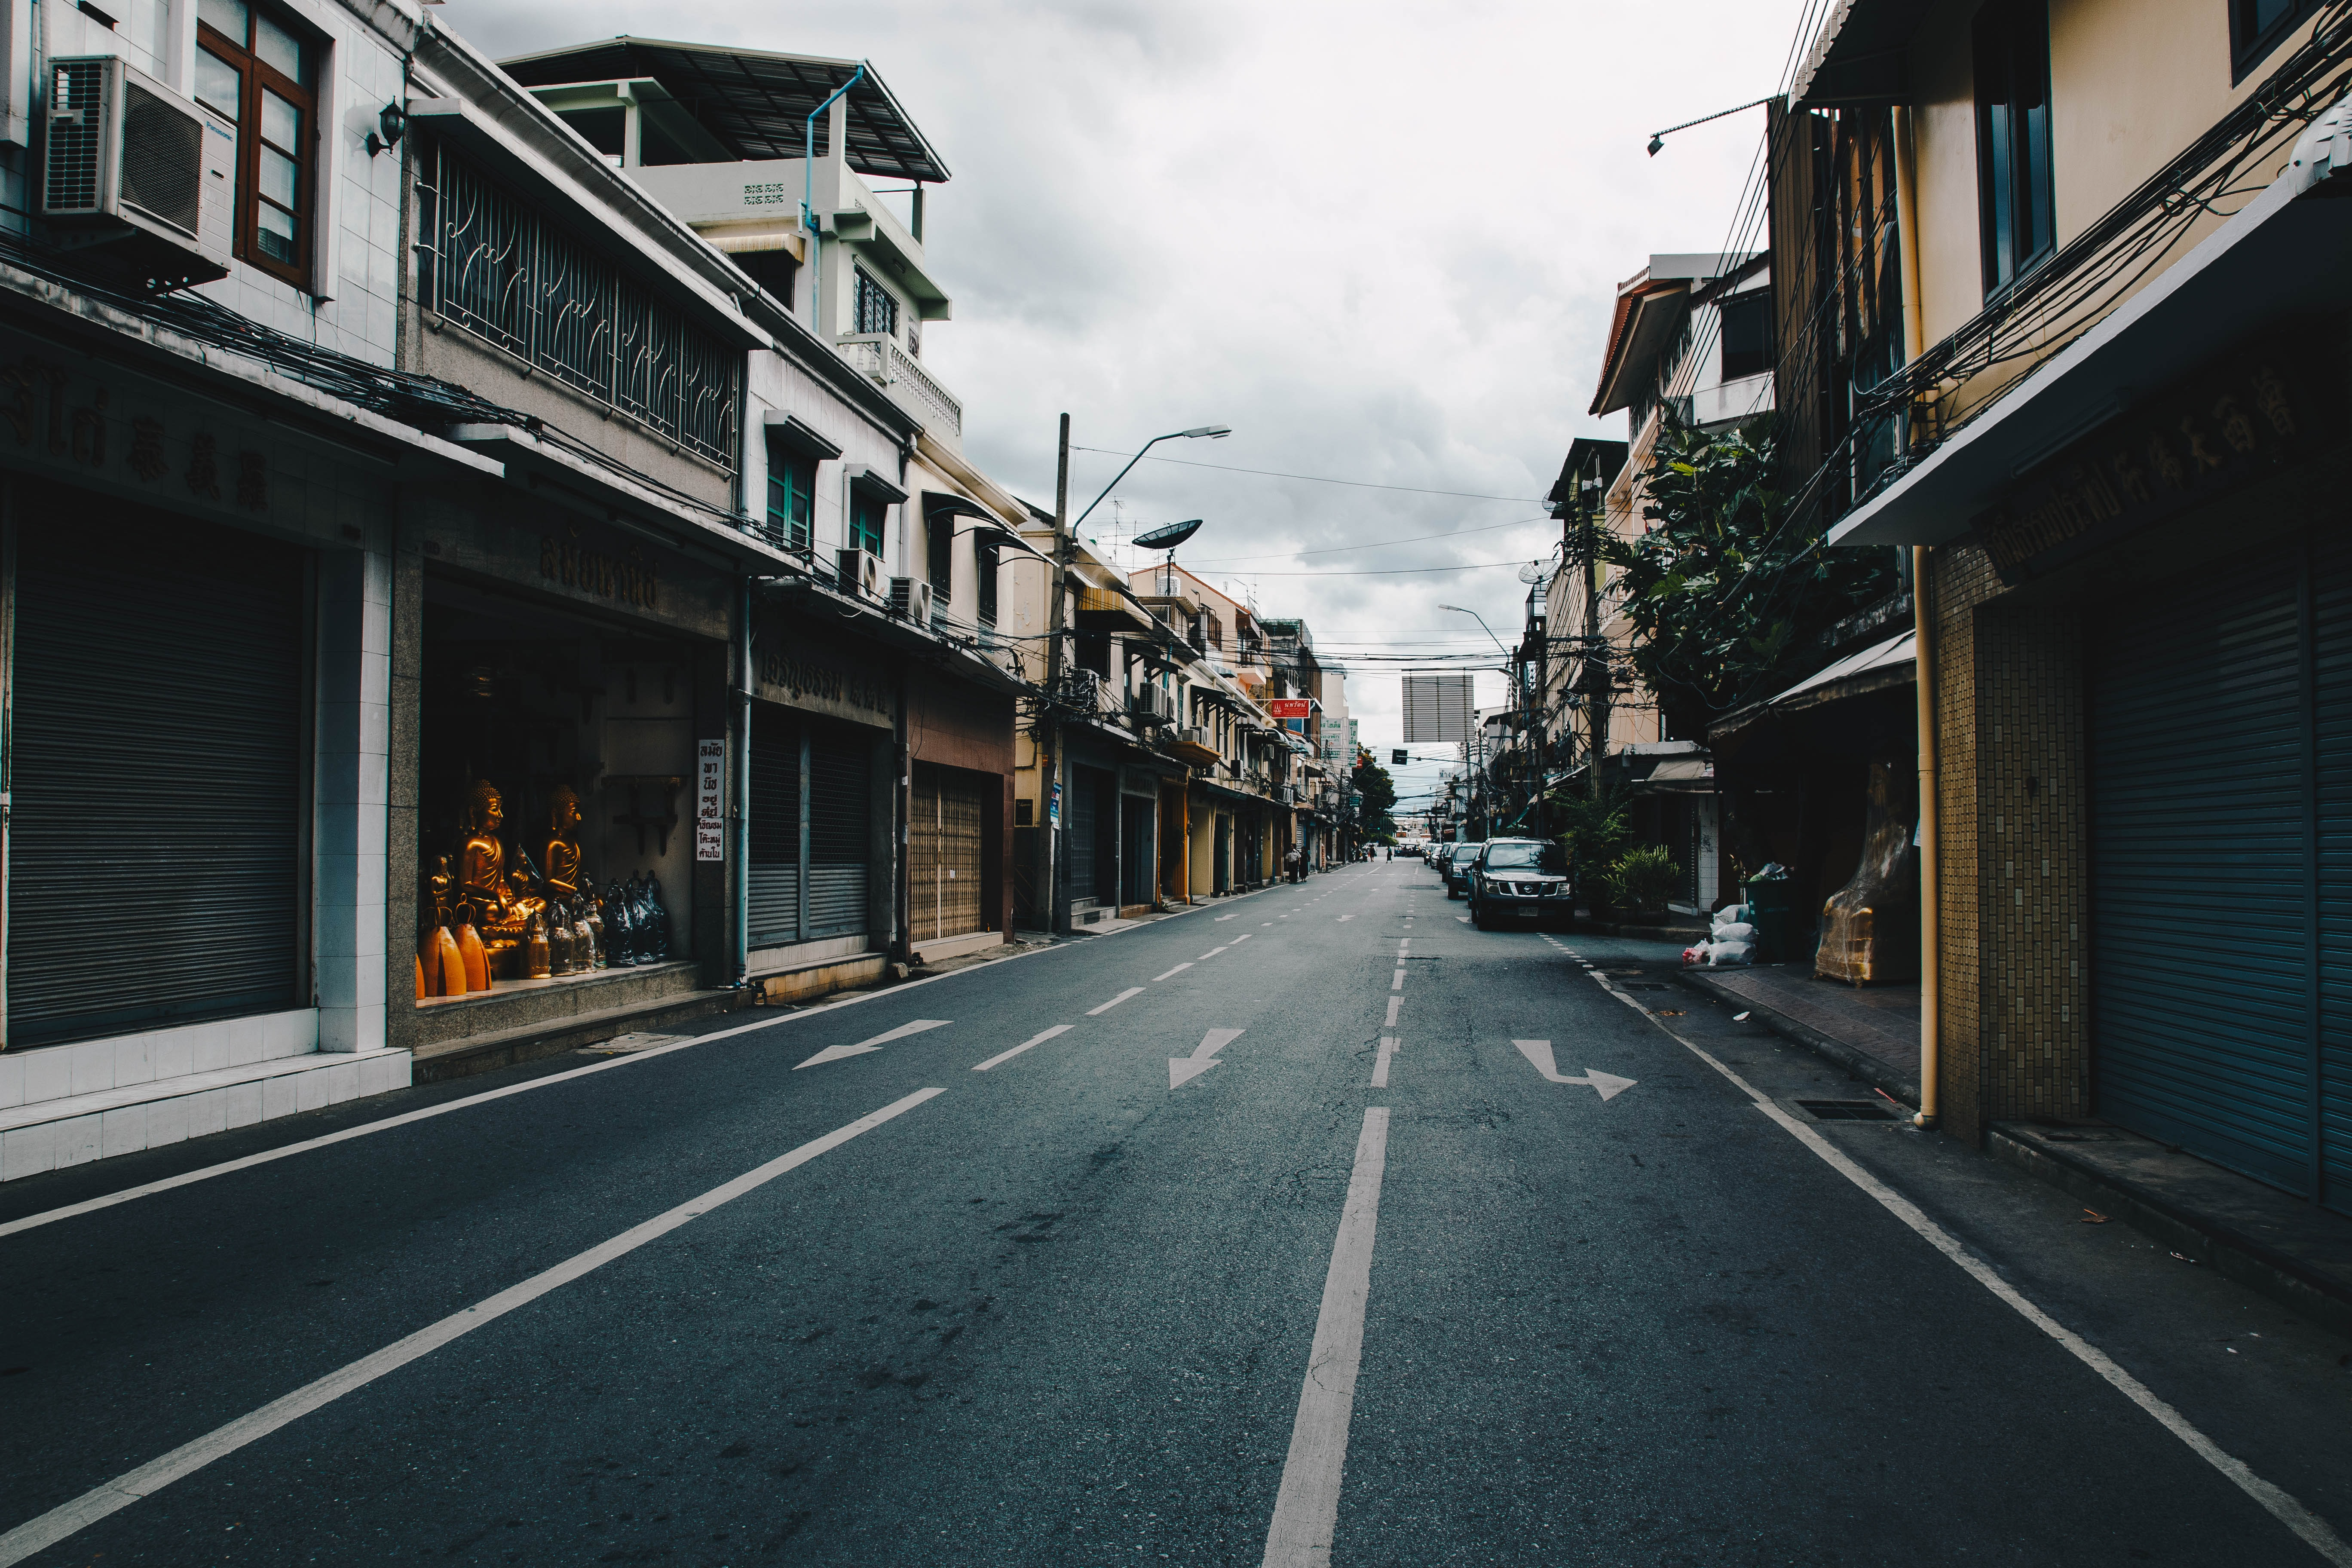 low light photography of the street under cloudy sky